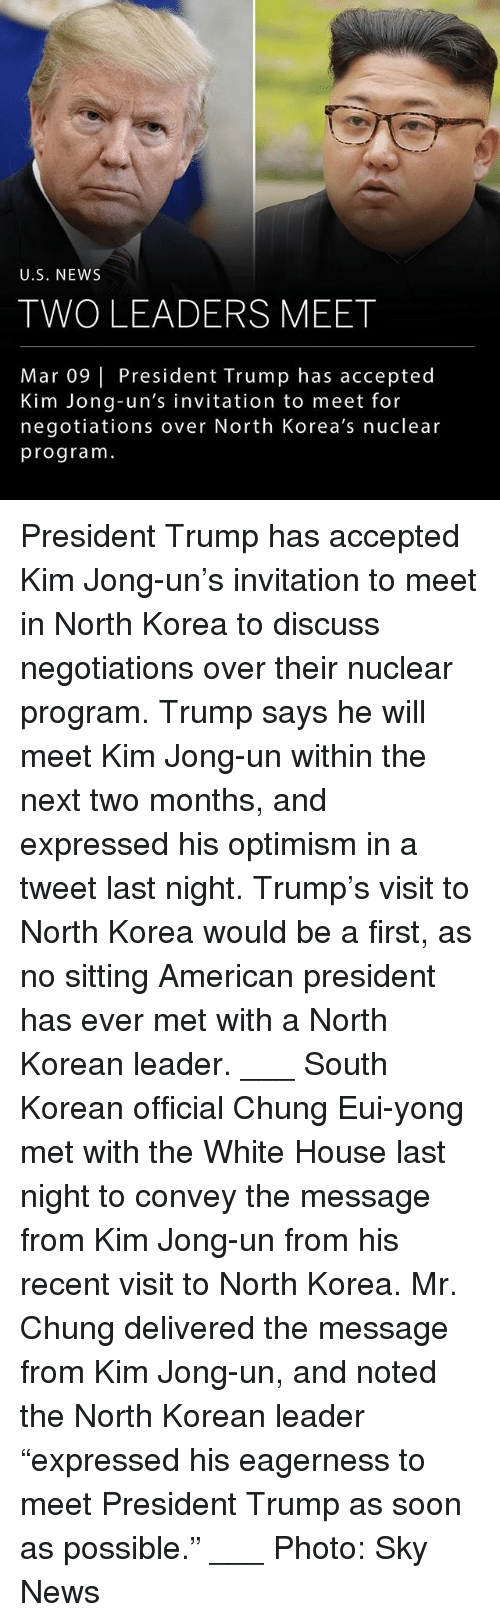 "Kim Jong-Un, Memes, and News: U.S. NEW:S  TWO LEADERS MEET  Mar 09 | President Trump has accepted  Kim Jong-un's invitation to meet for  negotiations over North Korea's nuclear  program President Trump has accepted Kim Jong-un's invitation to meet in North Korea to discuss negotiations over their nuclear program. Trump says he will meet Kim Jong-un within the next two months, and expressed his optimism in a tweet last night. Trump's visit to North Korea would be a first, as no sitting American president has ever met with a North Korean leader. ___ South Korean official Chung Eui-yong met with the White House last night to convey the message from Kim Jong-un from his recent visit to North Korea. Mr. Chung delivered the message from Kim Jong-un, and noted the North Korean leader ""expressed his eagerness to meet President Trump as soon as possible."" ___ Photo: Sky News"